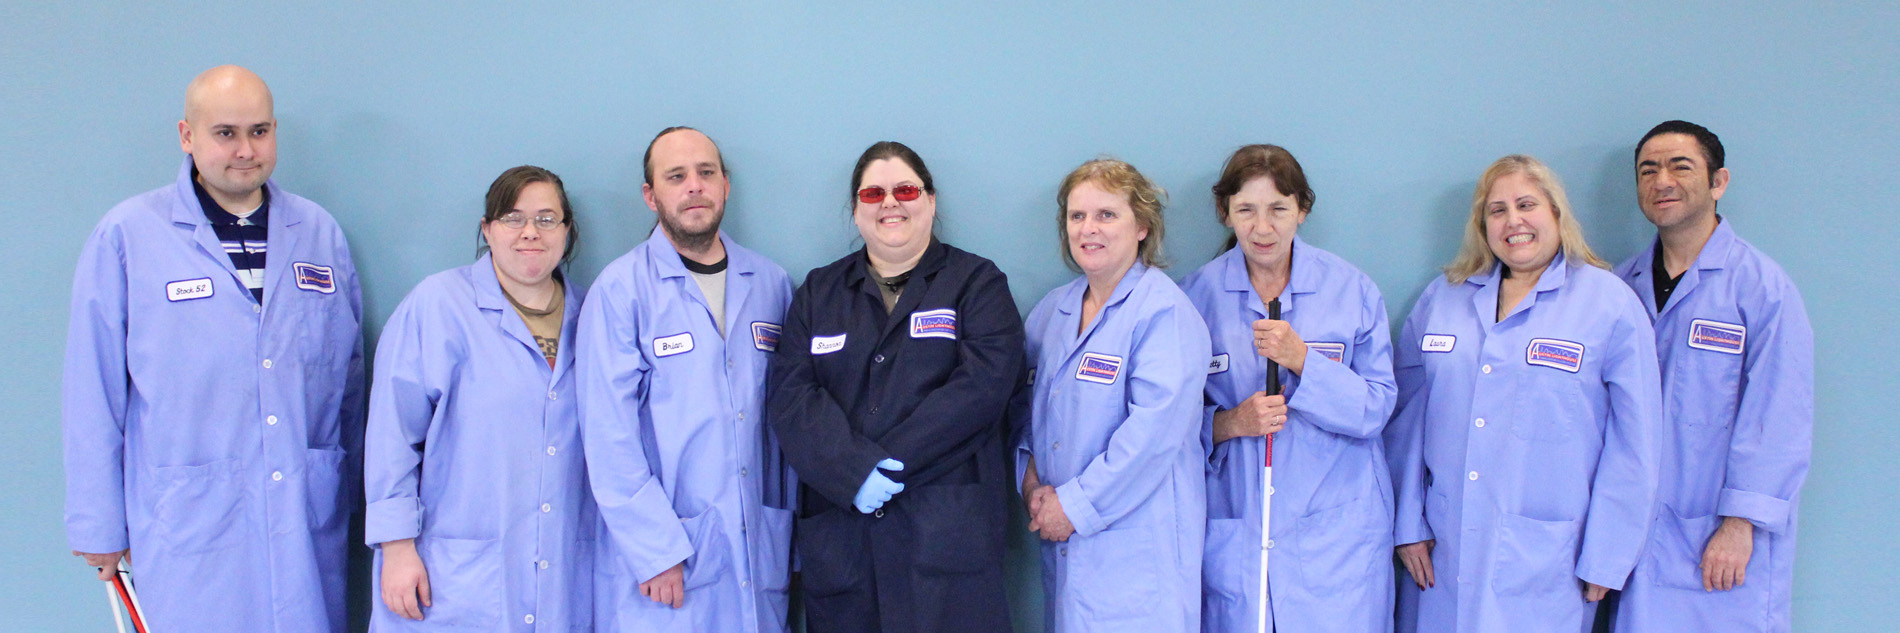 Austin Lighthouse Team dressed in manufacturing uniforms.